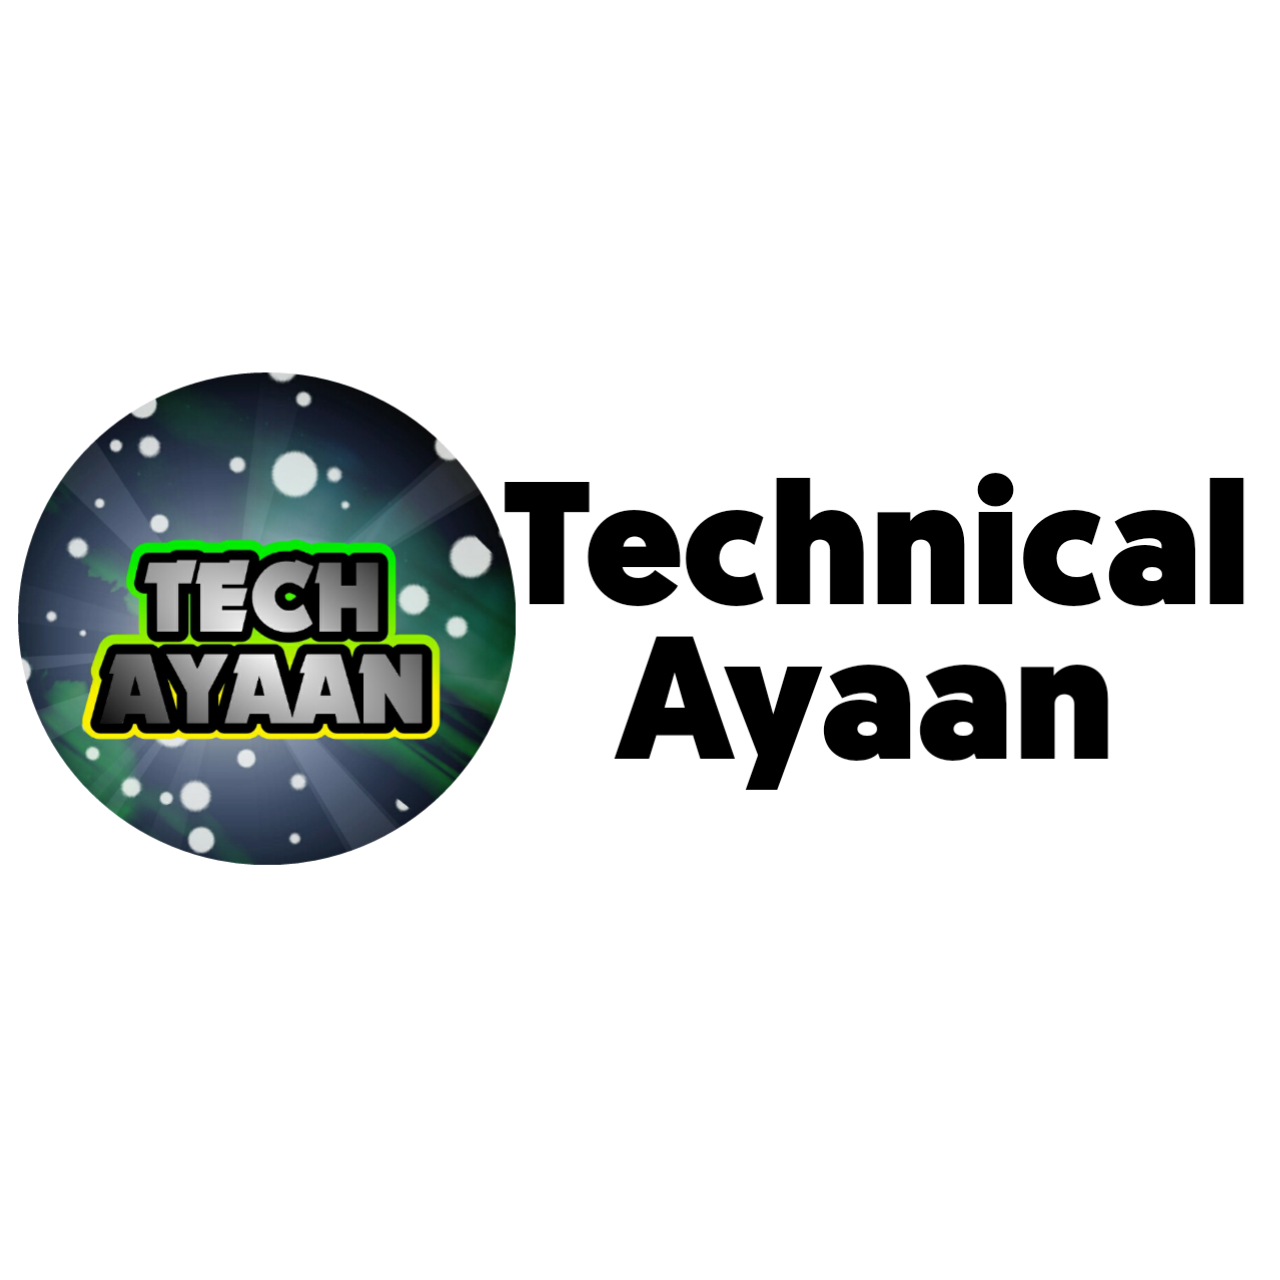 500 Subs Special Gfx Pack - TECHNICAL AYAAN